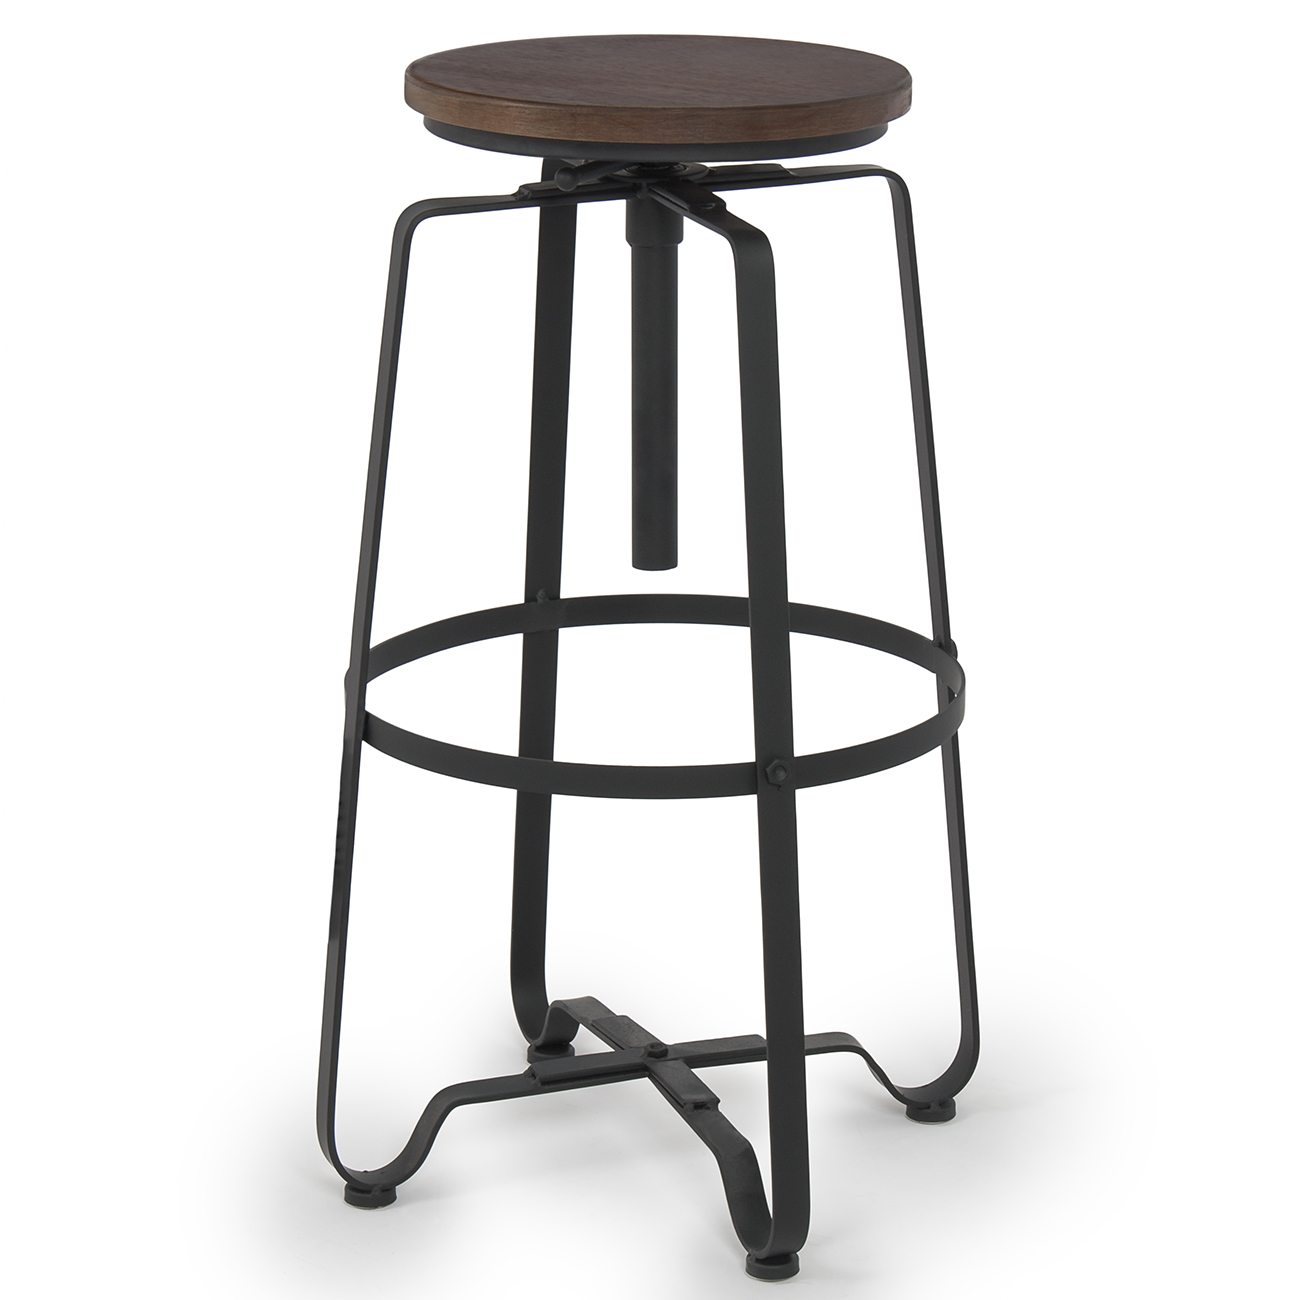 Industrial steel design adjustable height swivel bar stool for Industrial design bar stools